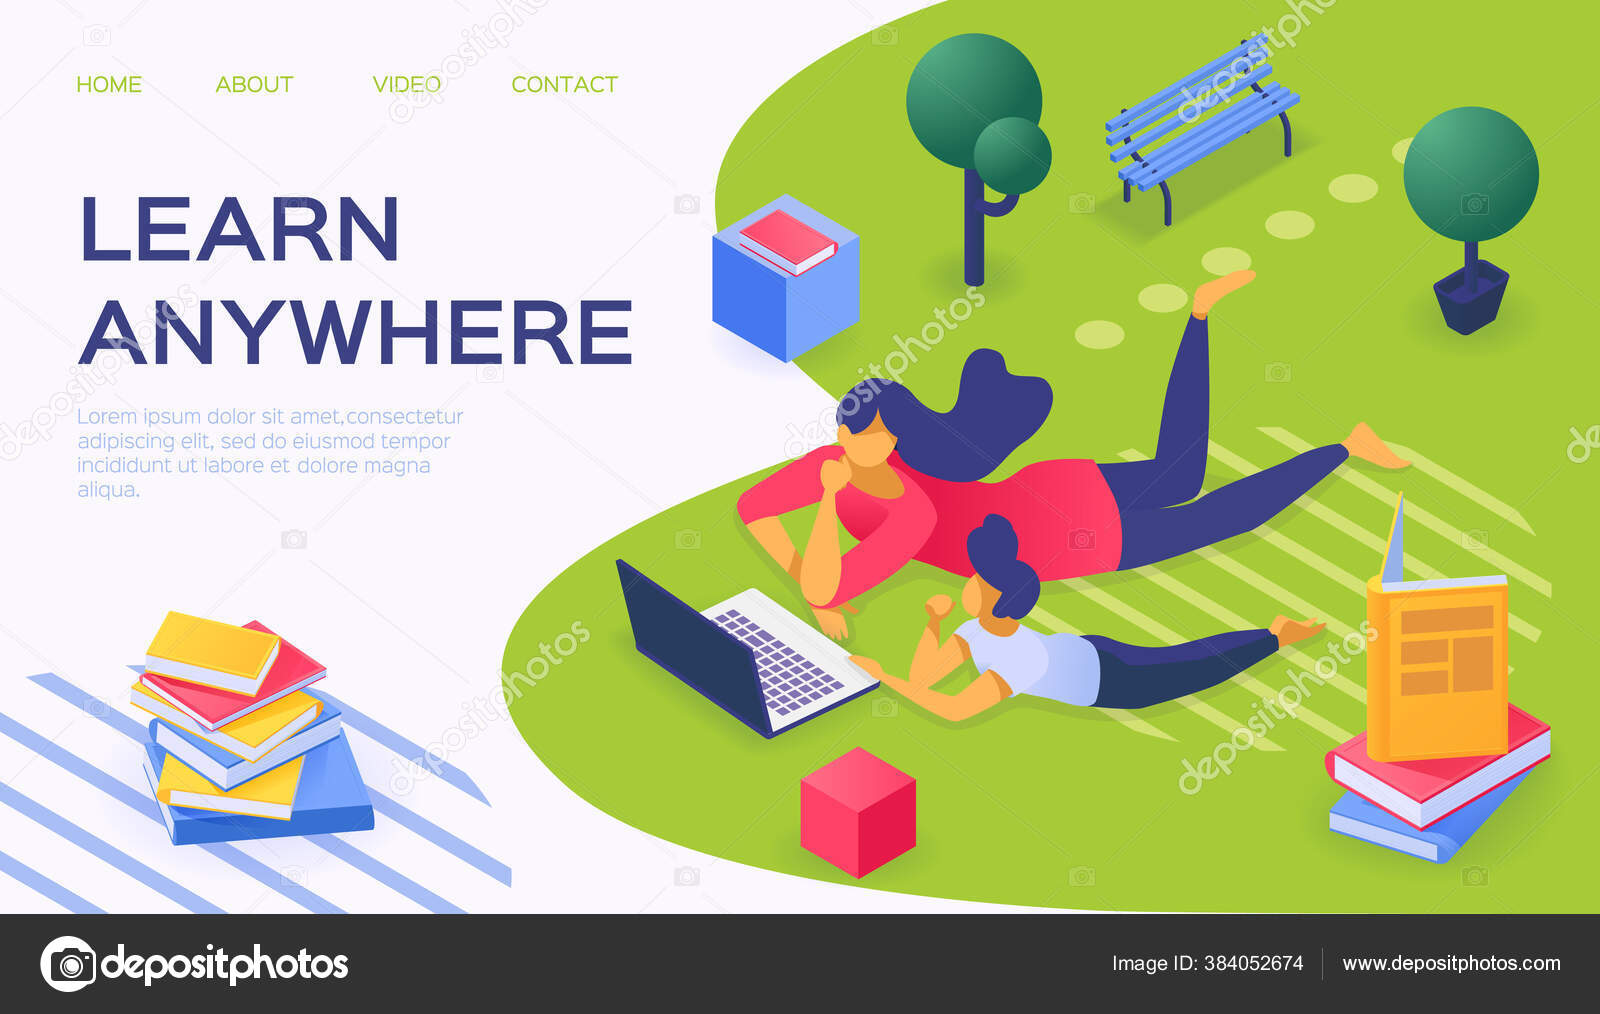 20 Learn anywhere Vector Images   Free & Royalty free Learn ...